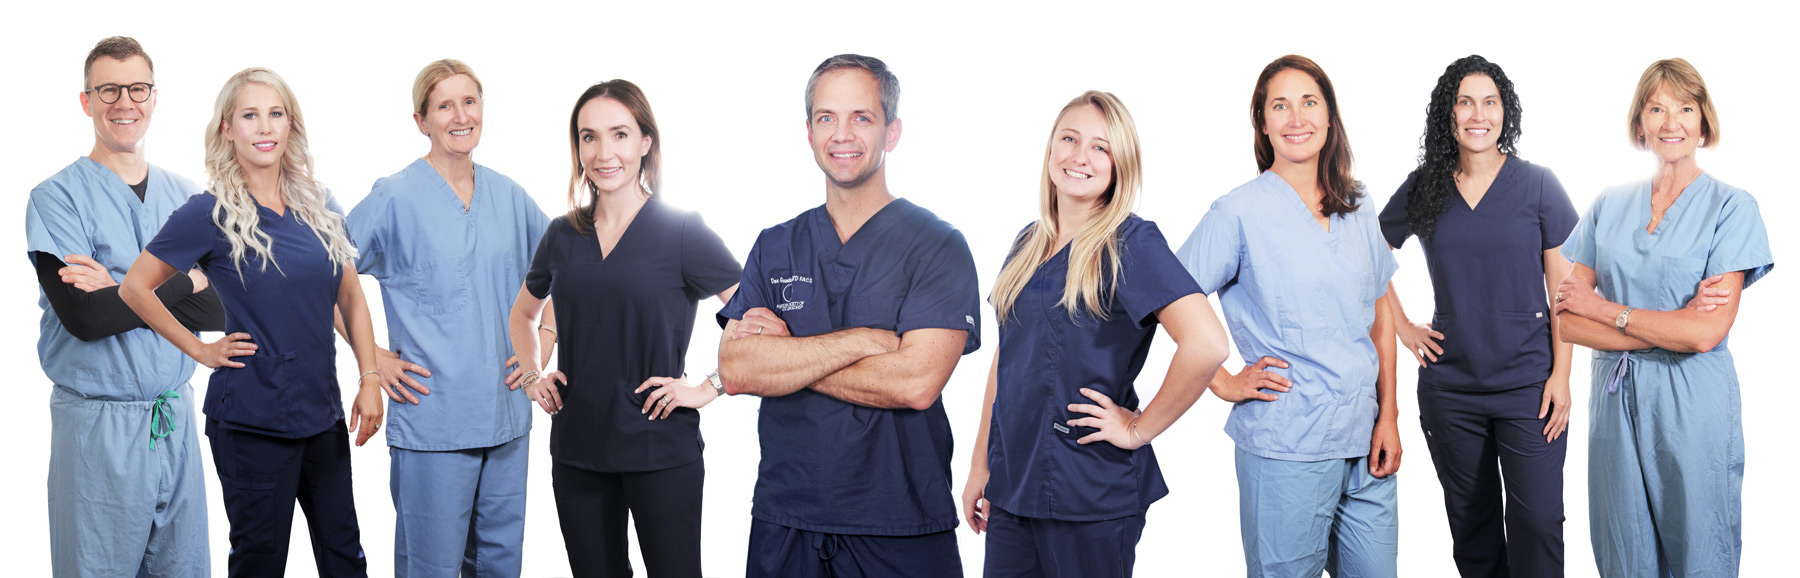 Staff of Coastal Plastic Surgery LLC